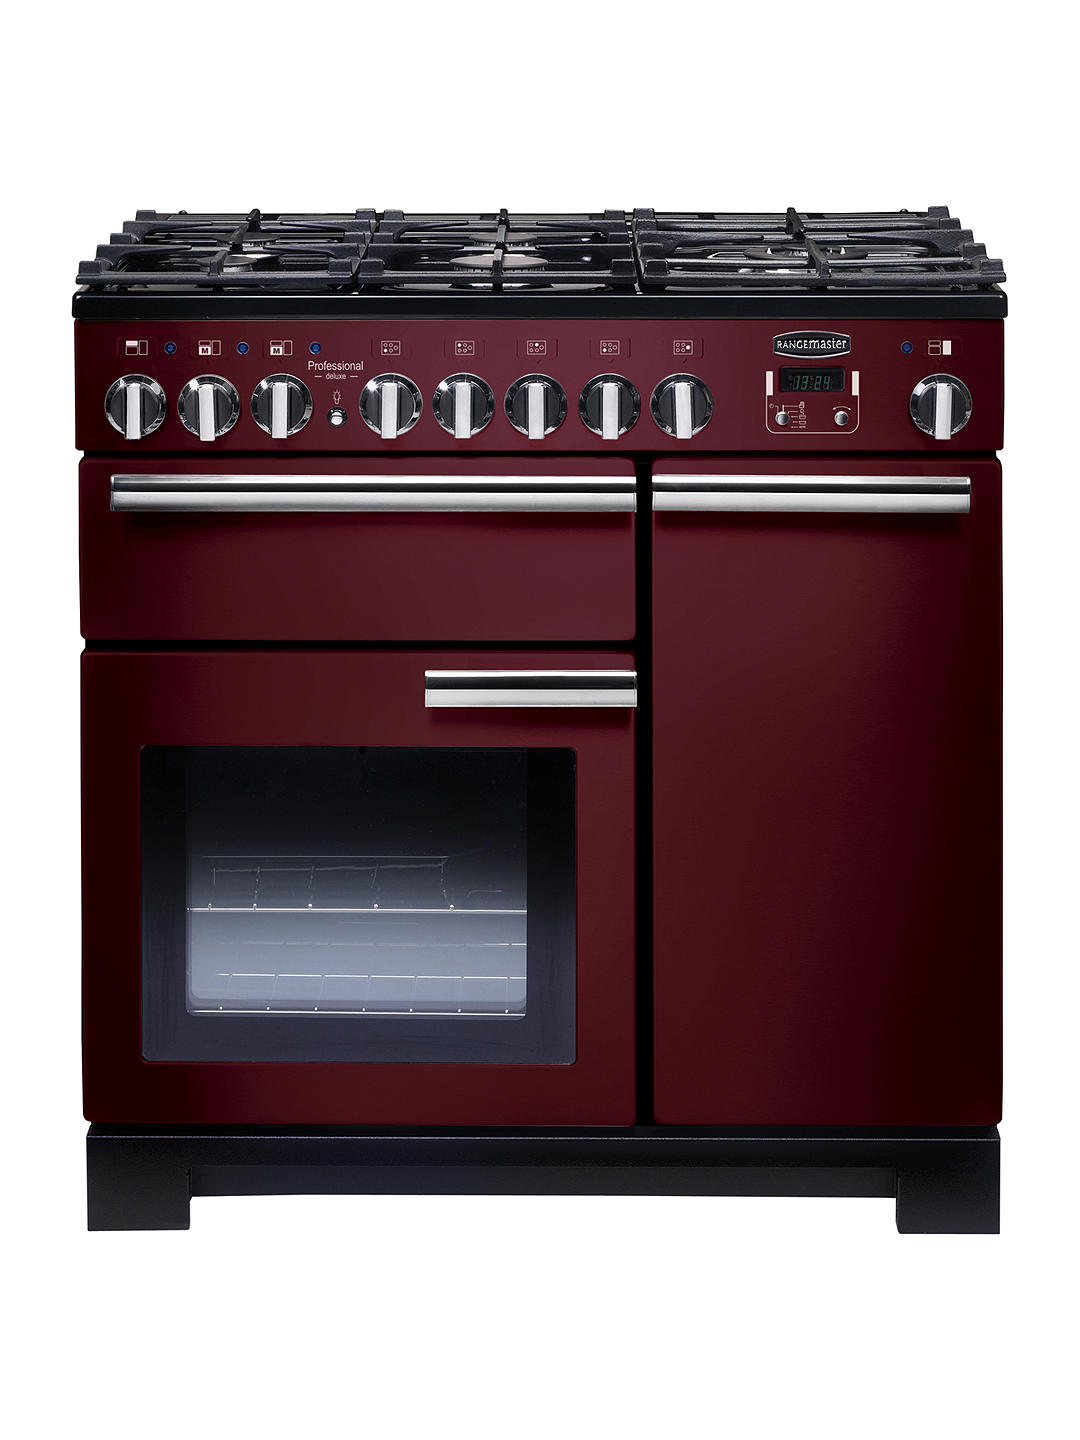 Buy Rangemaster Professional Deluxe 90 Dual Fuel Range Cooker, Cranberry/Chrome Trim Online at johnlewis.com